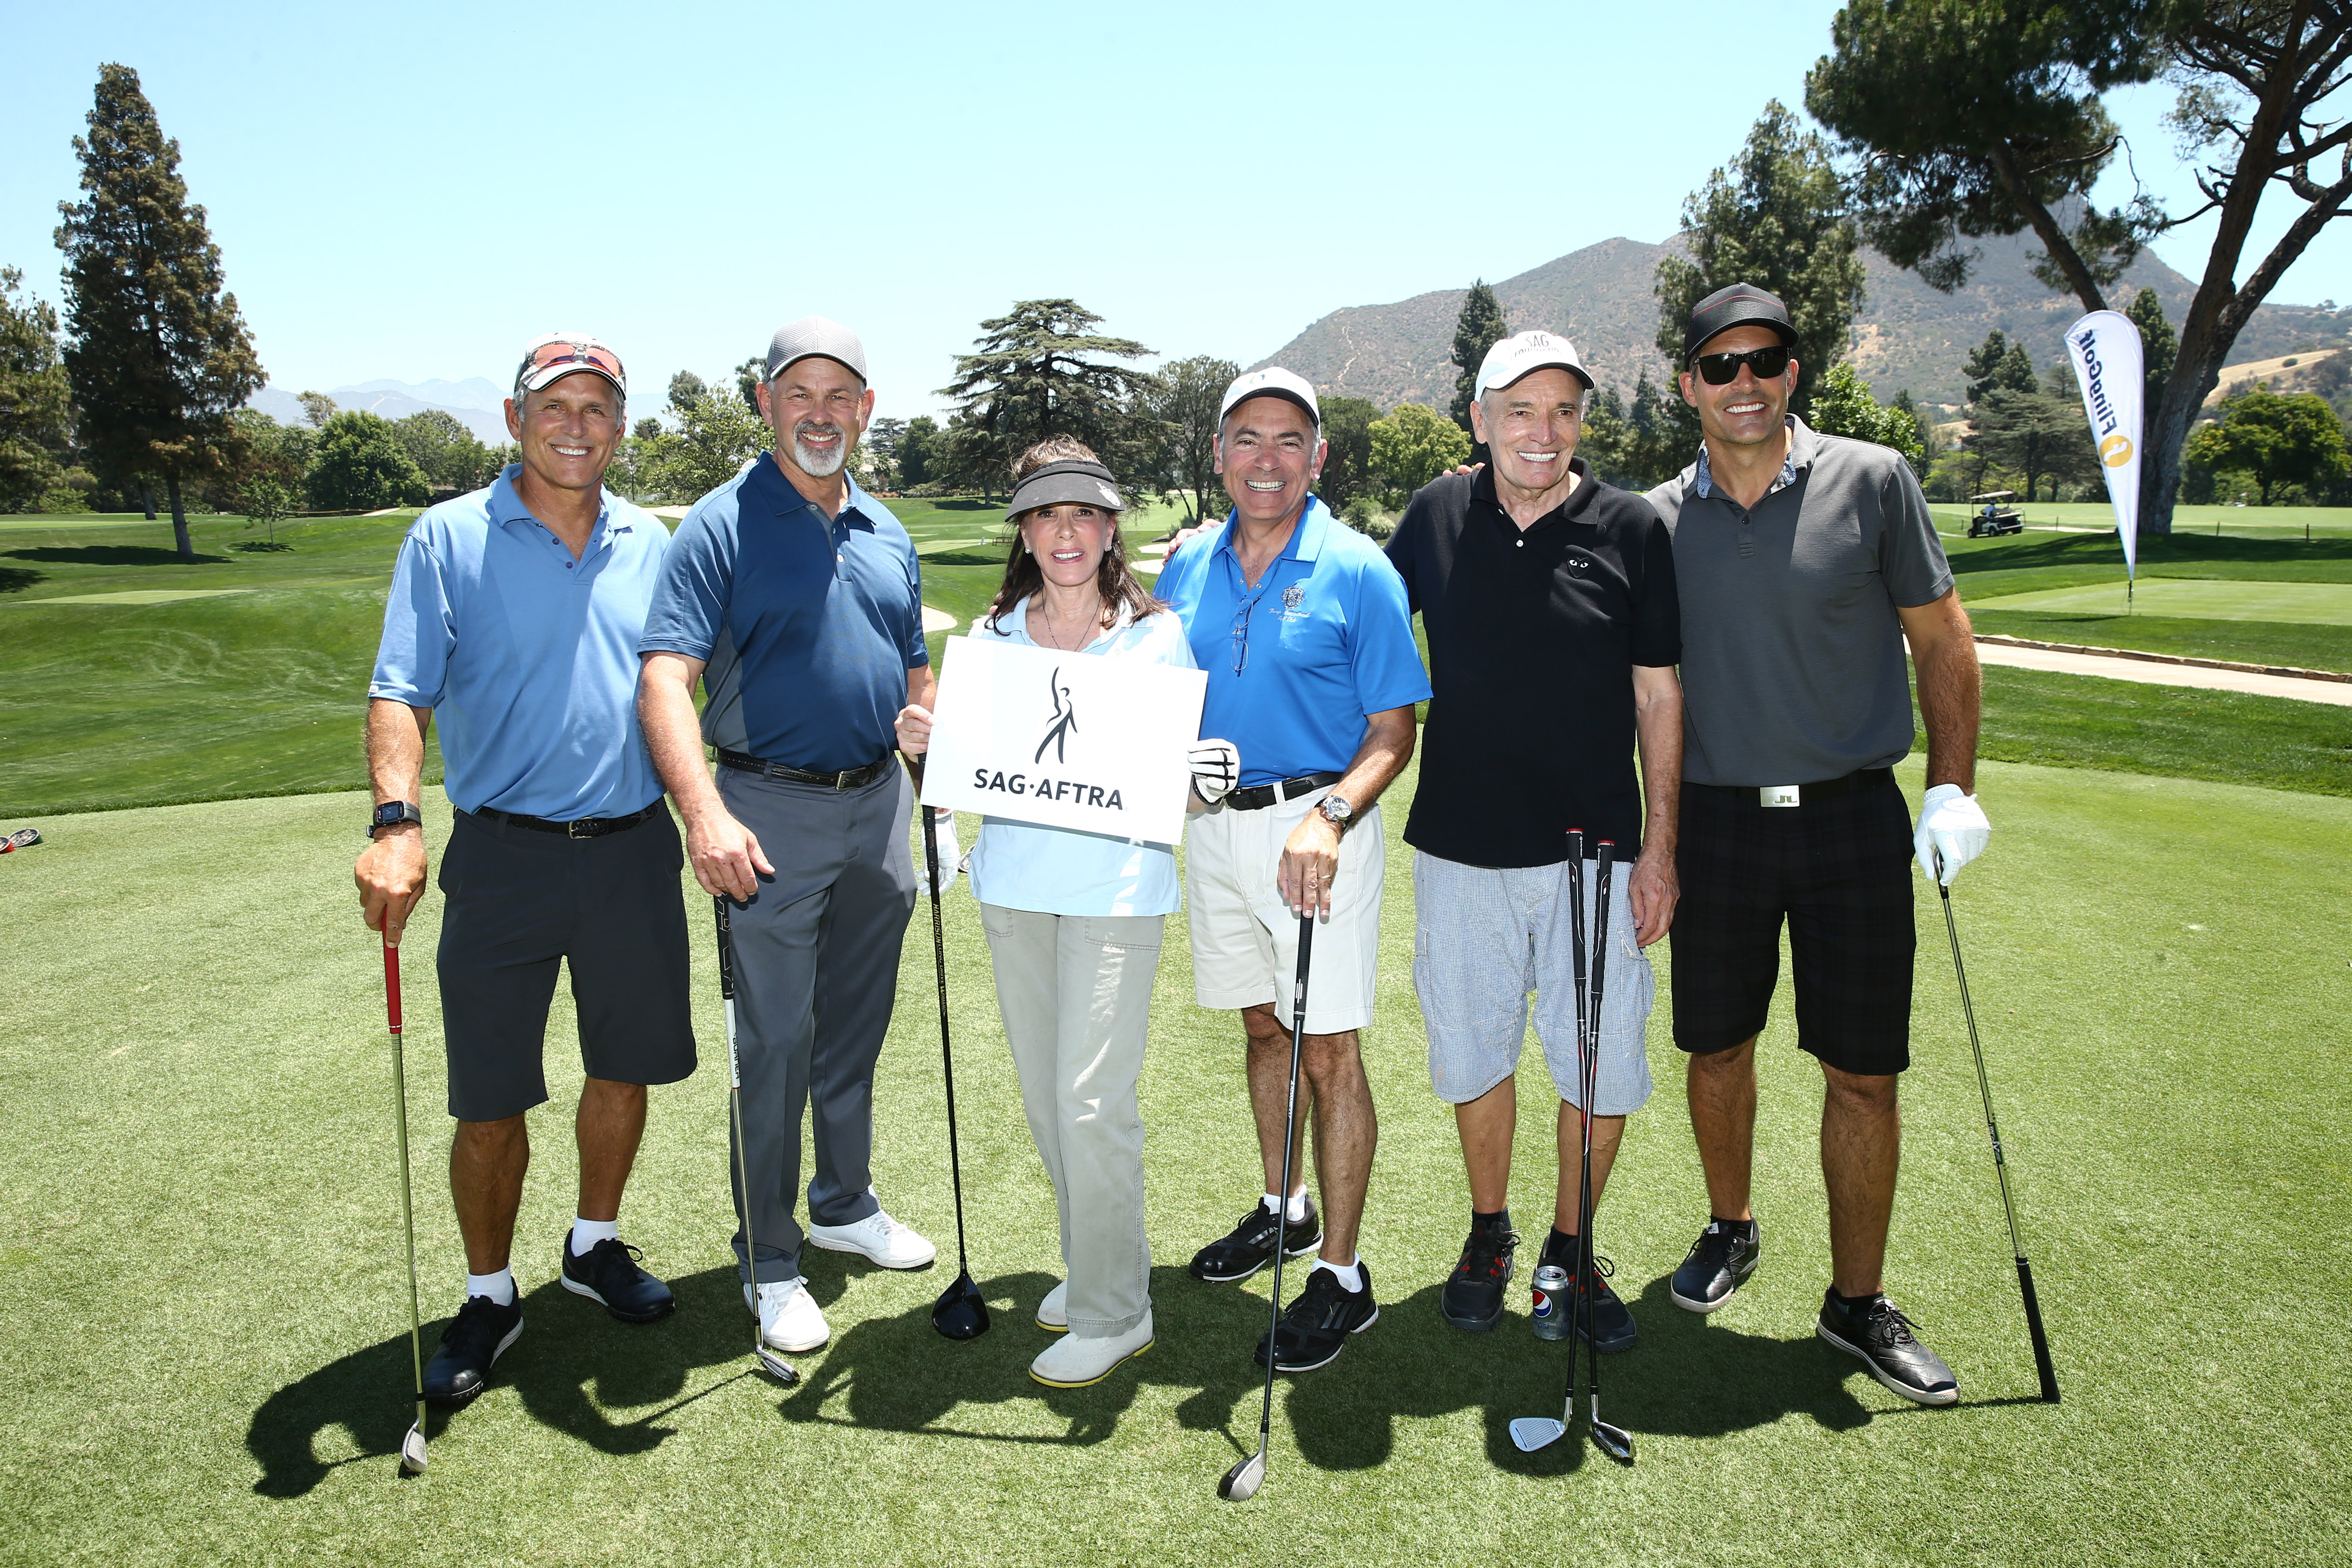 Gregory Harrison, Paul Pape, Kate Linder, Joe Cipriano, Tom Bower and Galen Gering of Team SAG-AFTRA play at the Screen Actors Guild Foundation's 6th Annual Los Angeles Golf Classic on June 8, 2015 in Burbank, California. (Photo by Mark Davis/Getty Images for The Screen Actors Guild Foundation)